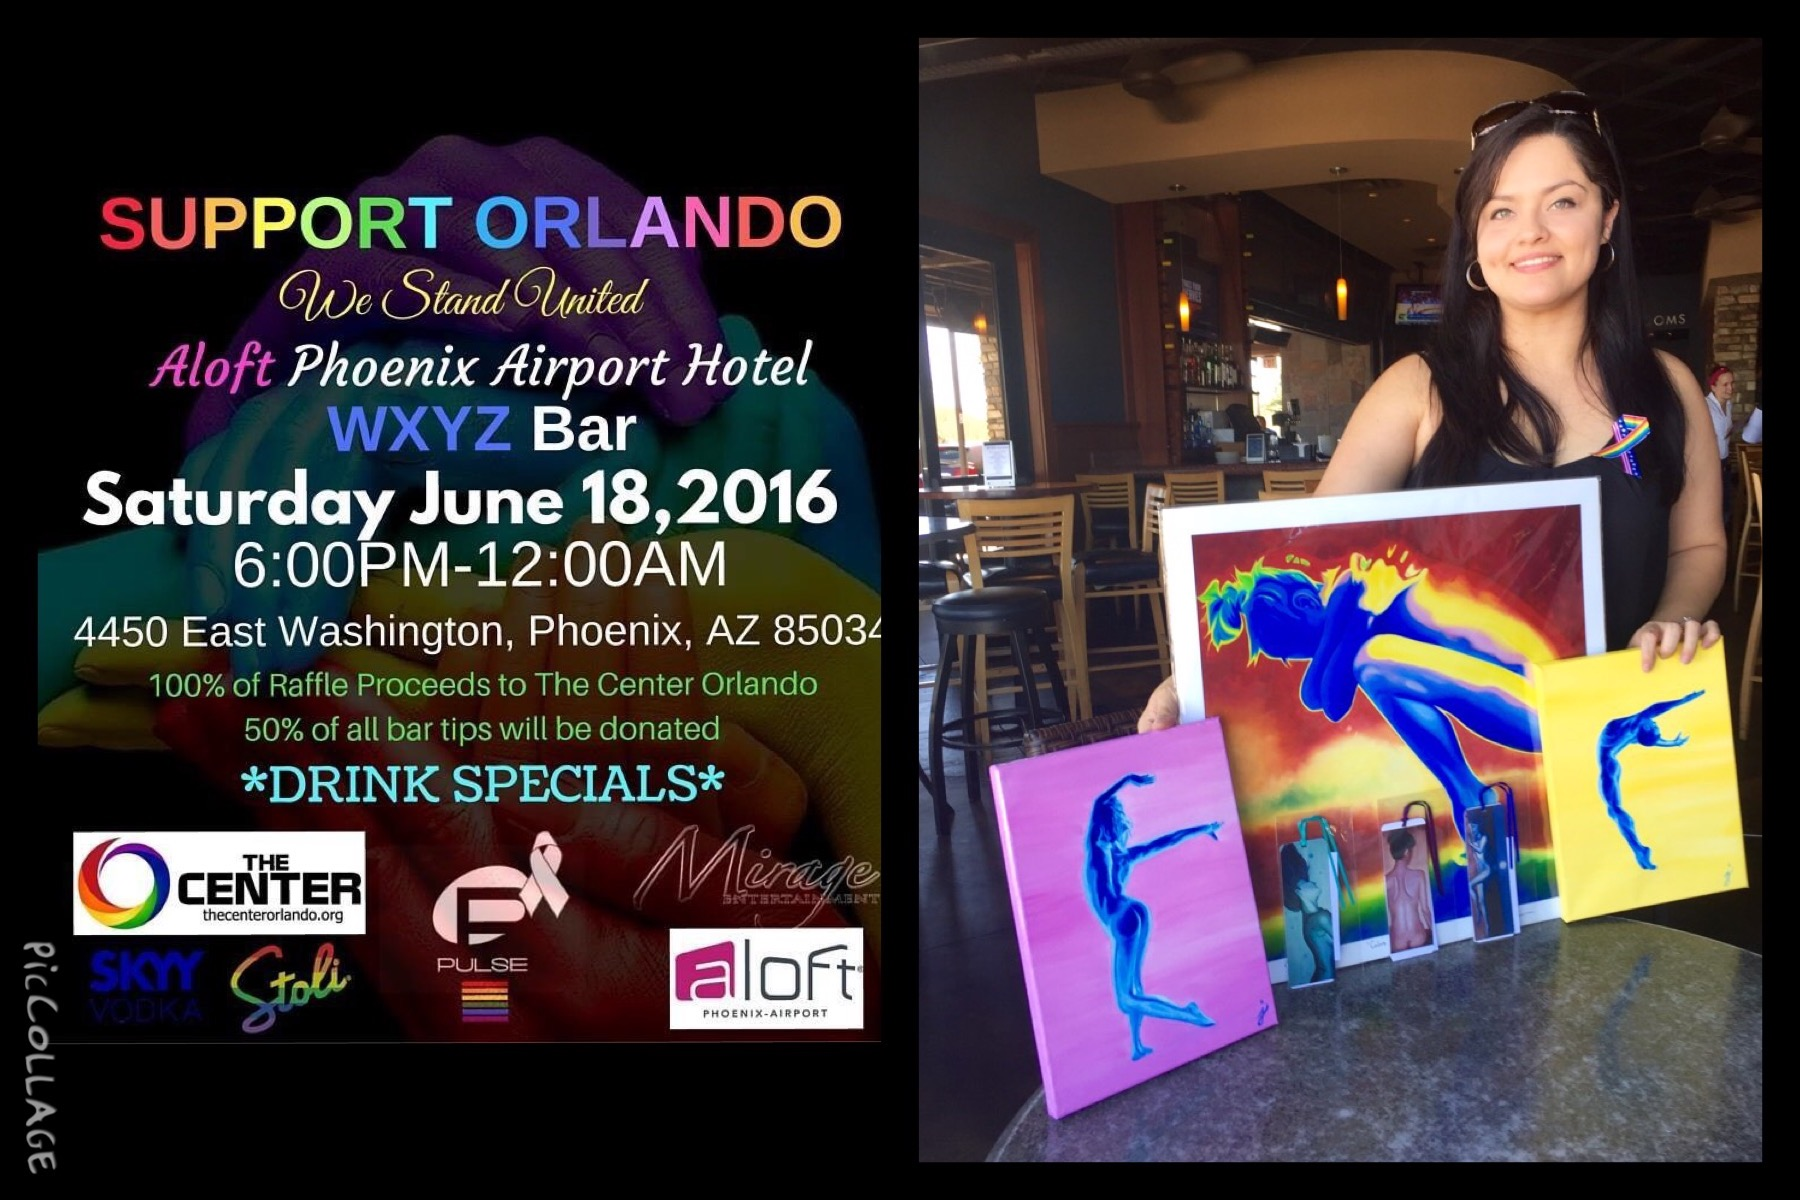 Donation for the silent auction for LGBT The Center Orlando in support of Orlando Victims